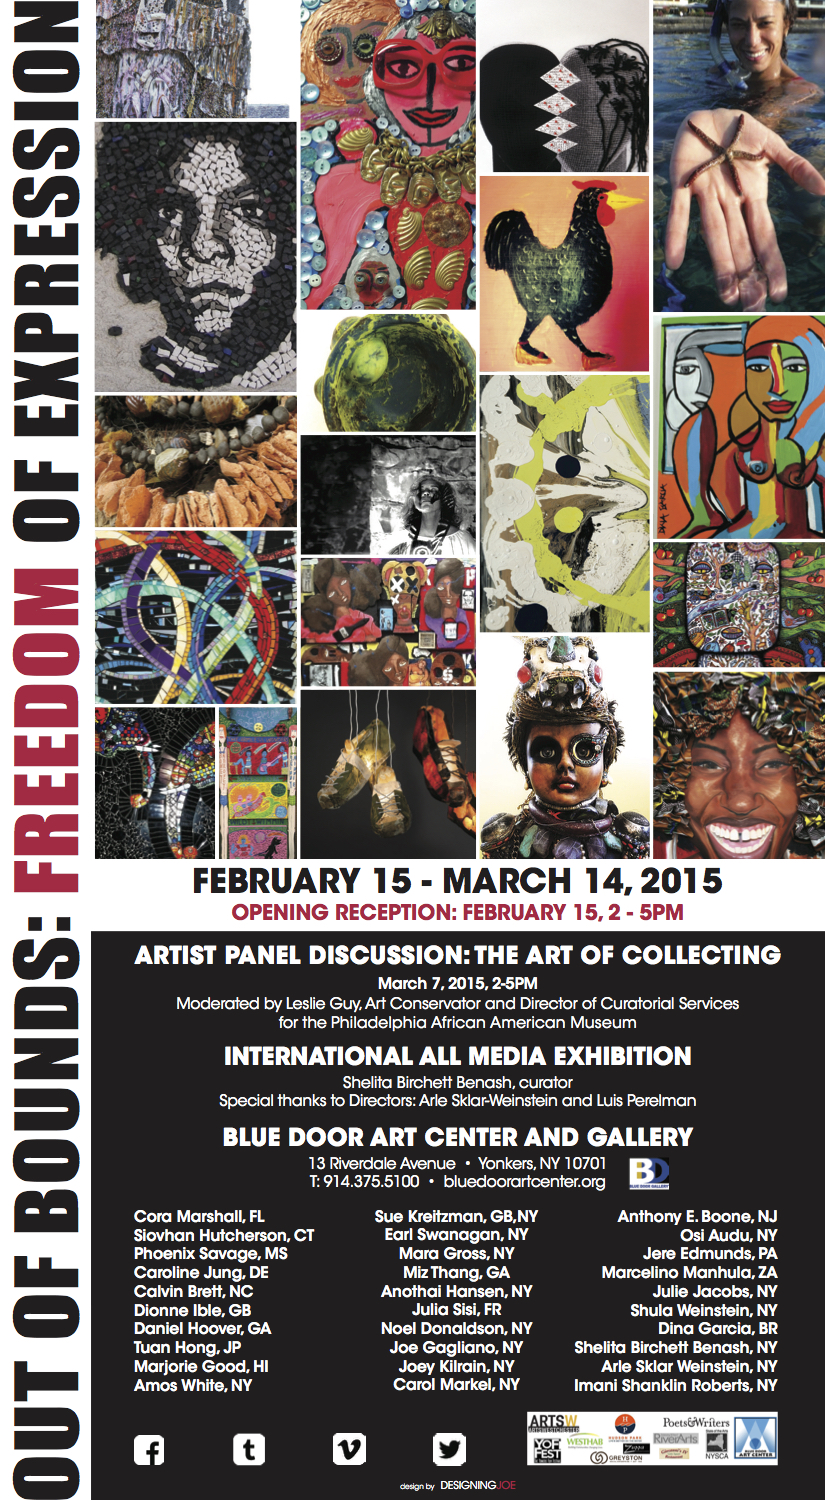 Out of Bounds: Freedom of Expression Exhibition 2015 Blue Door Gallery Yonkers, NY, Curated by Shelita Birchett Benash